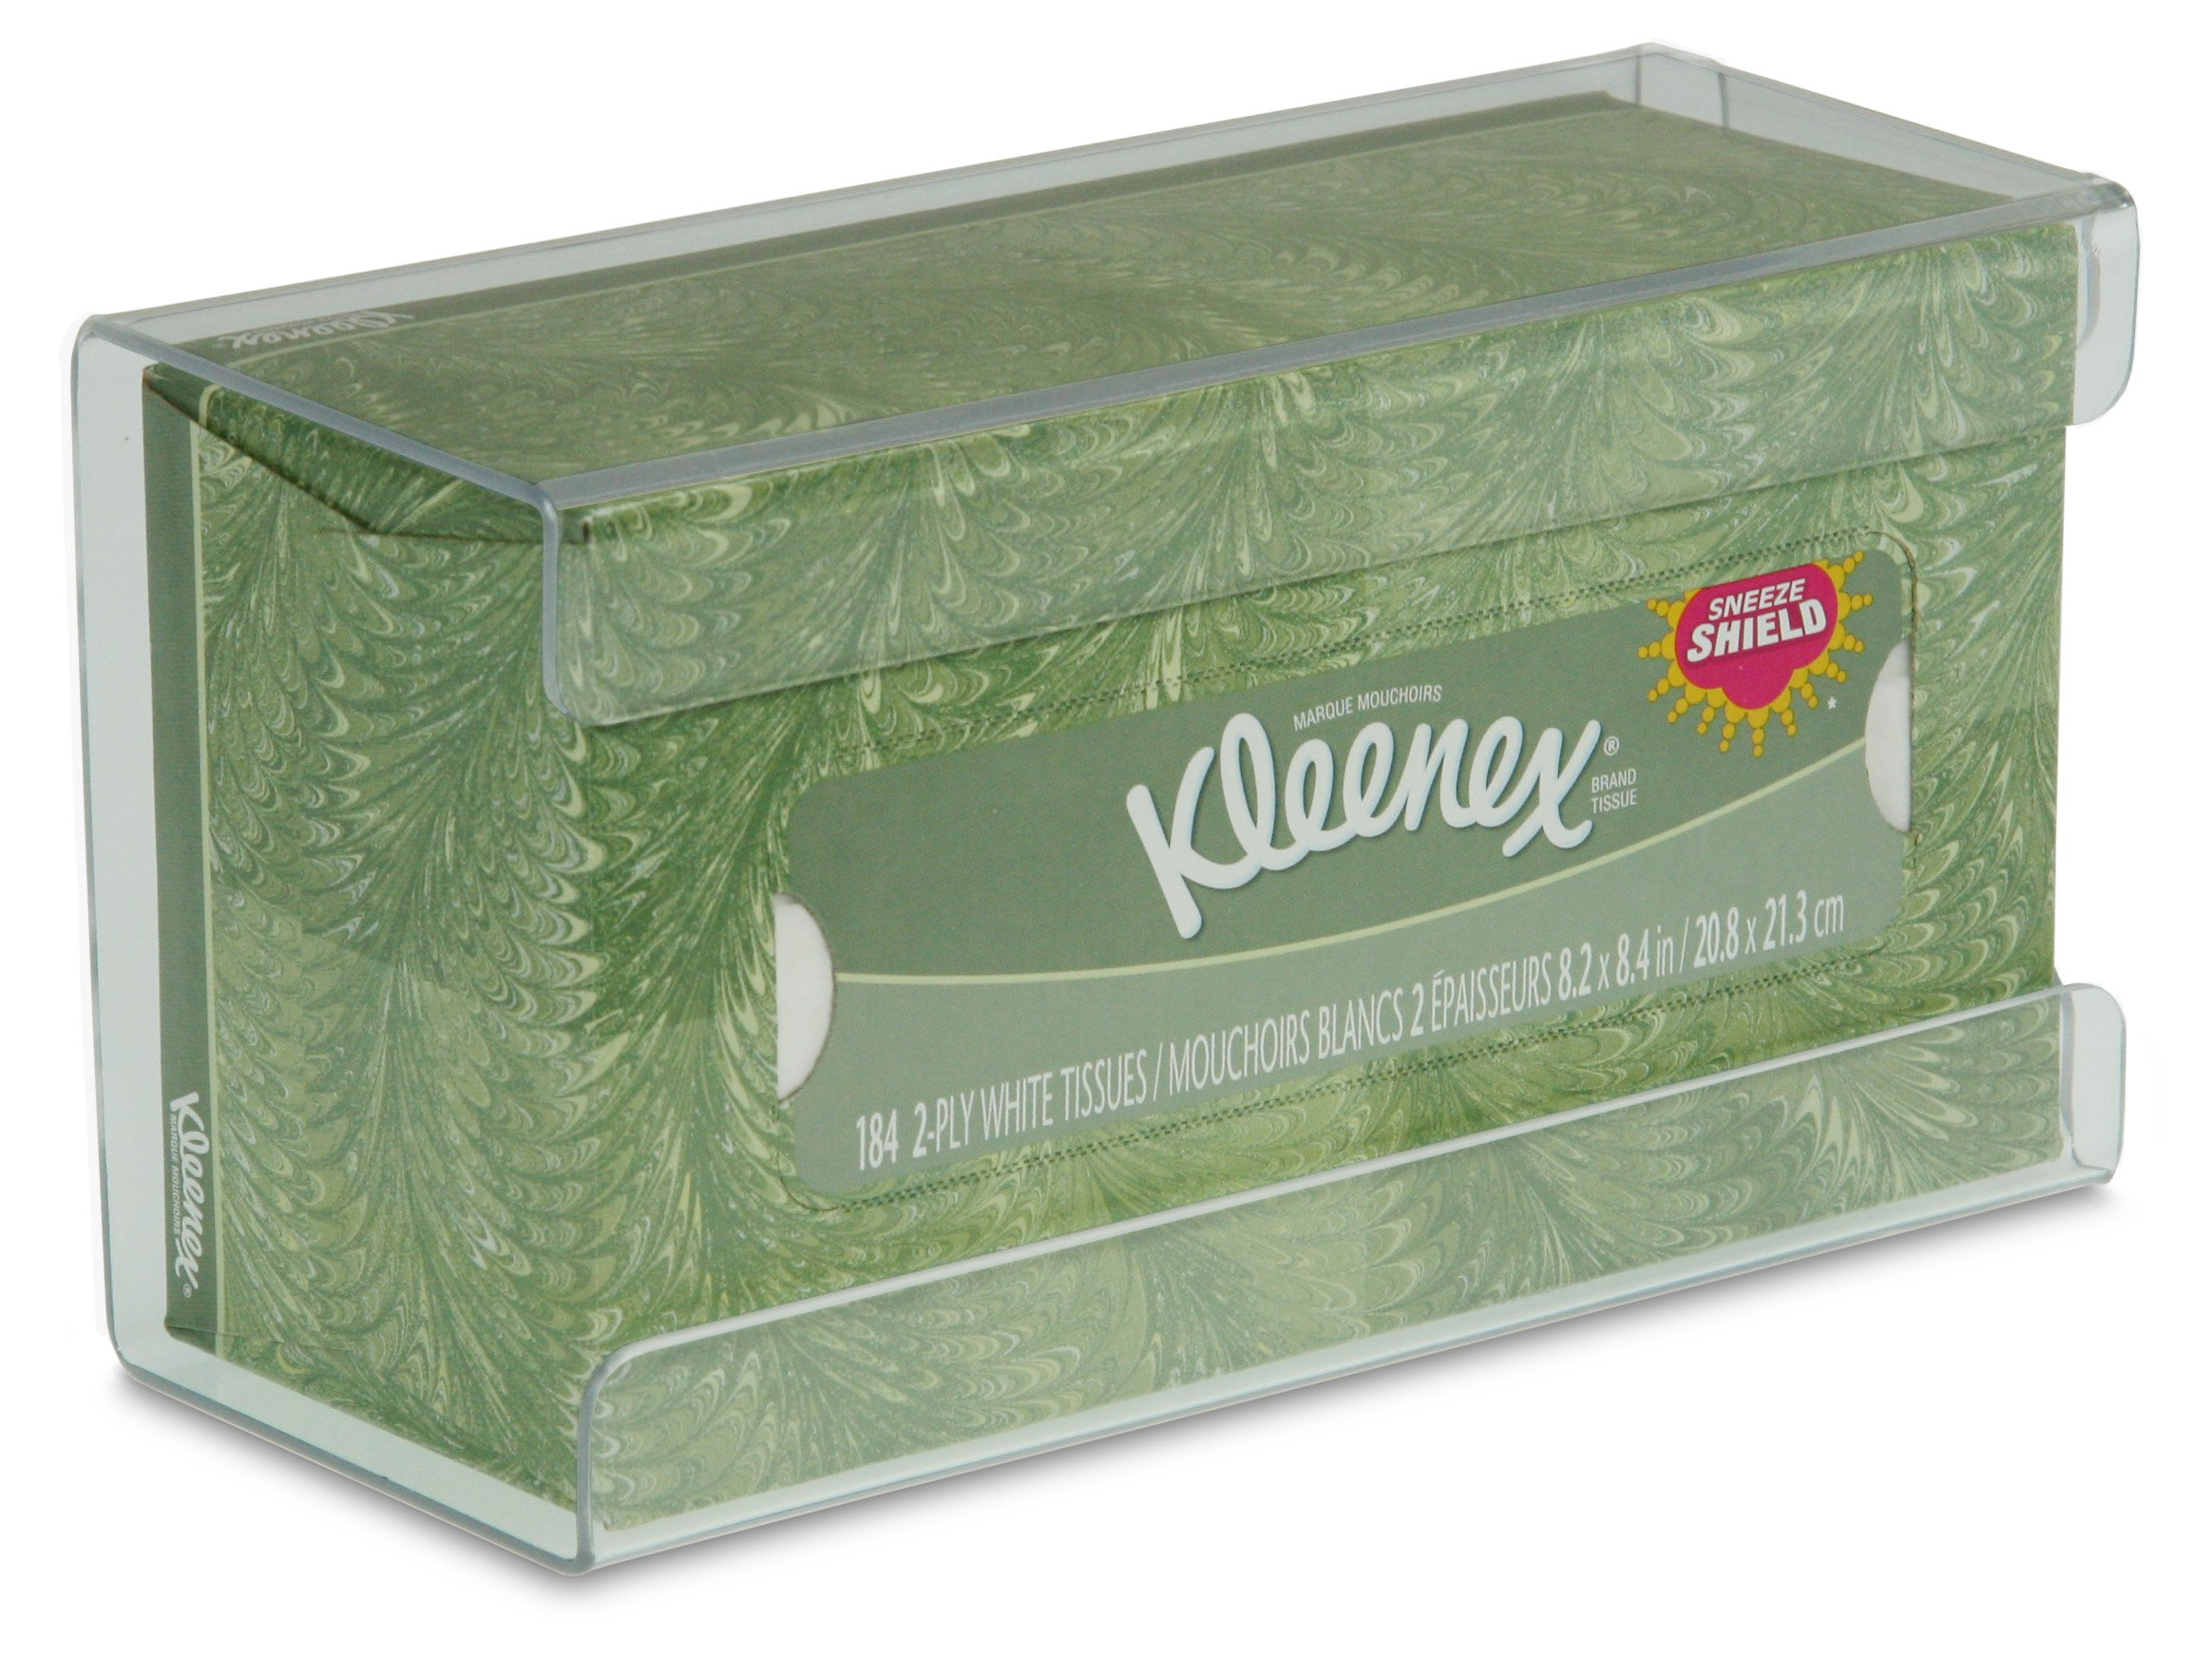 TrippNT 51234 Plastic Wall Mountable Kleenex Box Holder, 9-5/8'' Width x 5-1/4'' Height x 4'' Depth, Medium, Clear by TrippNT